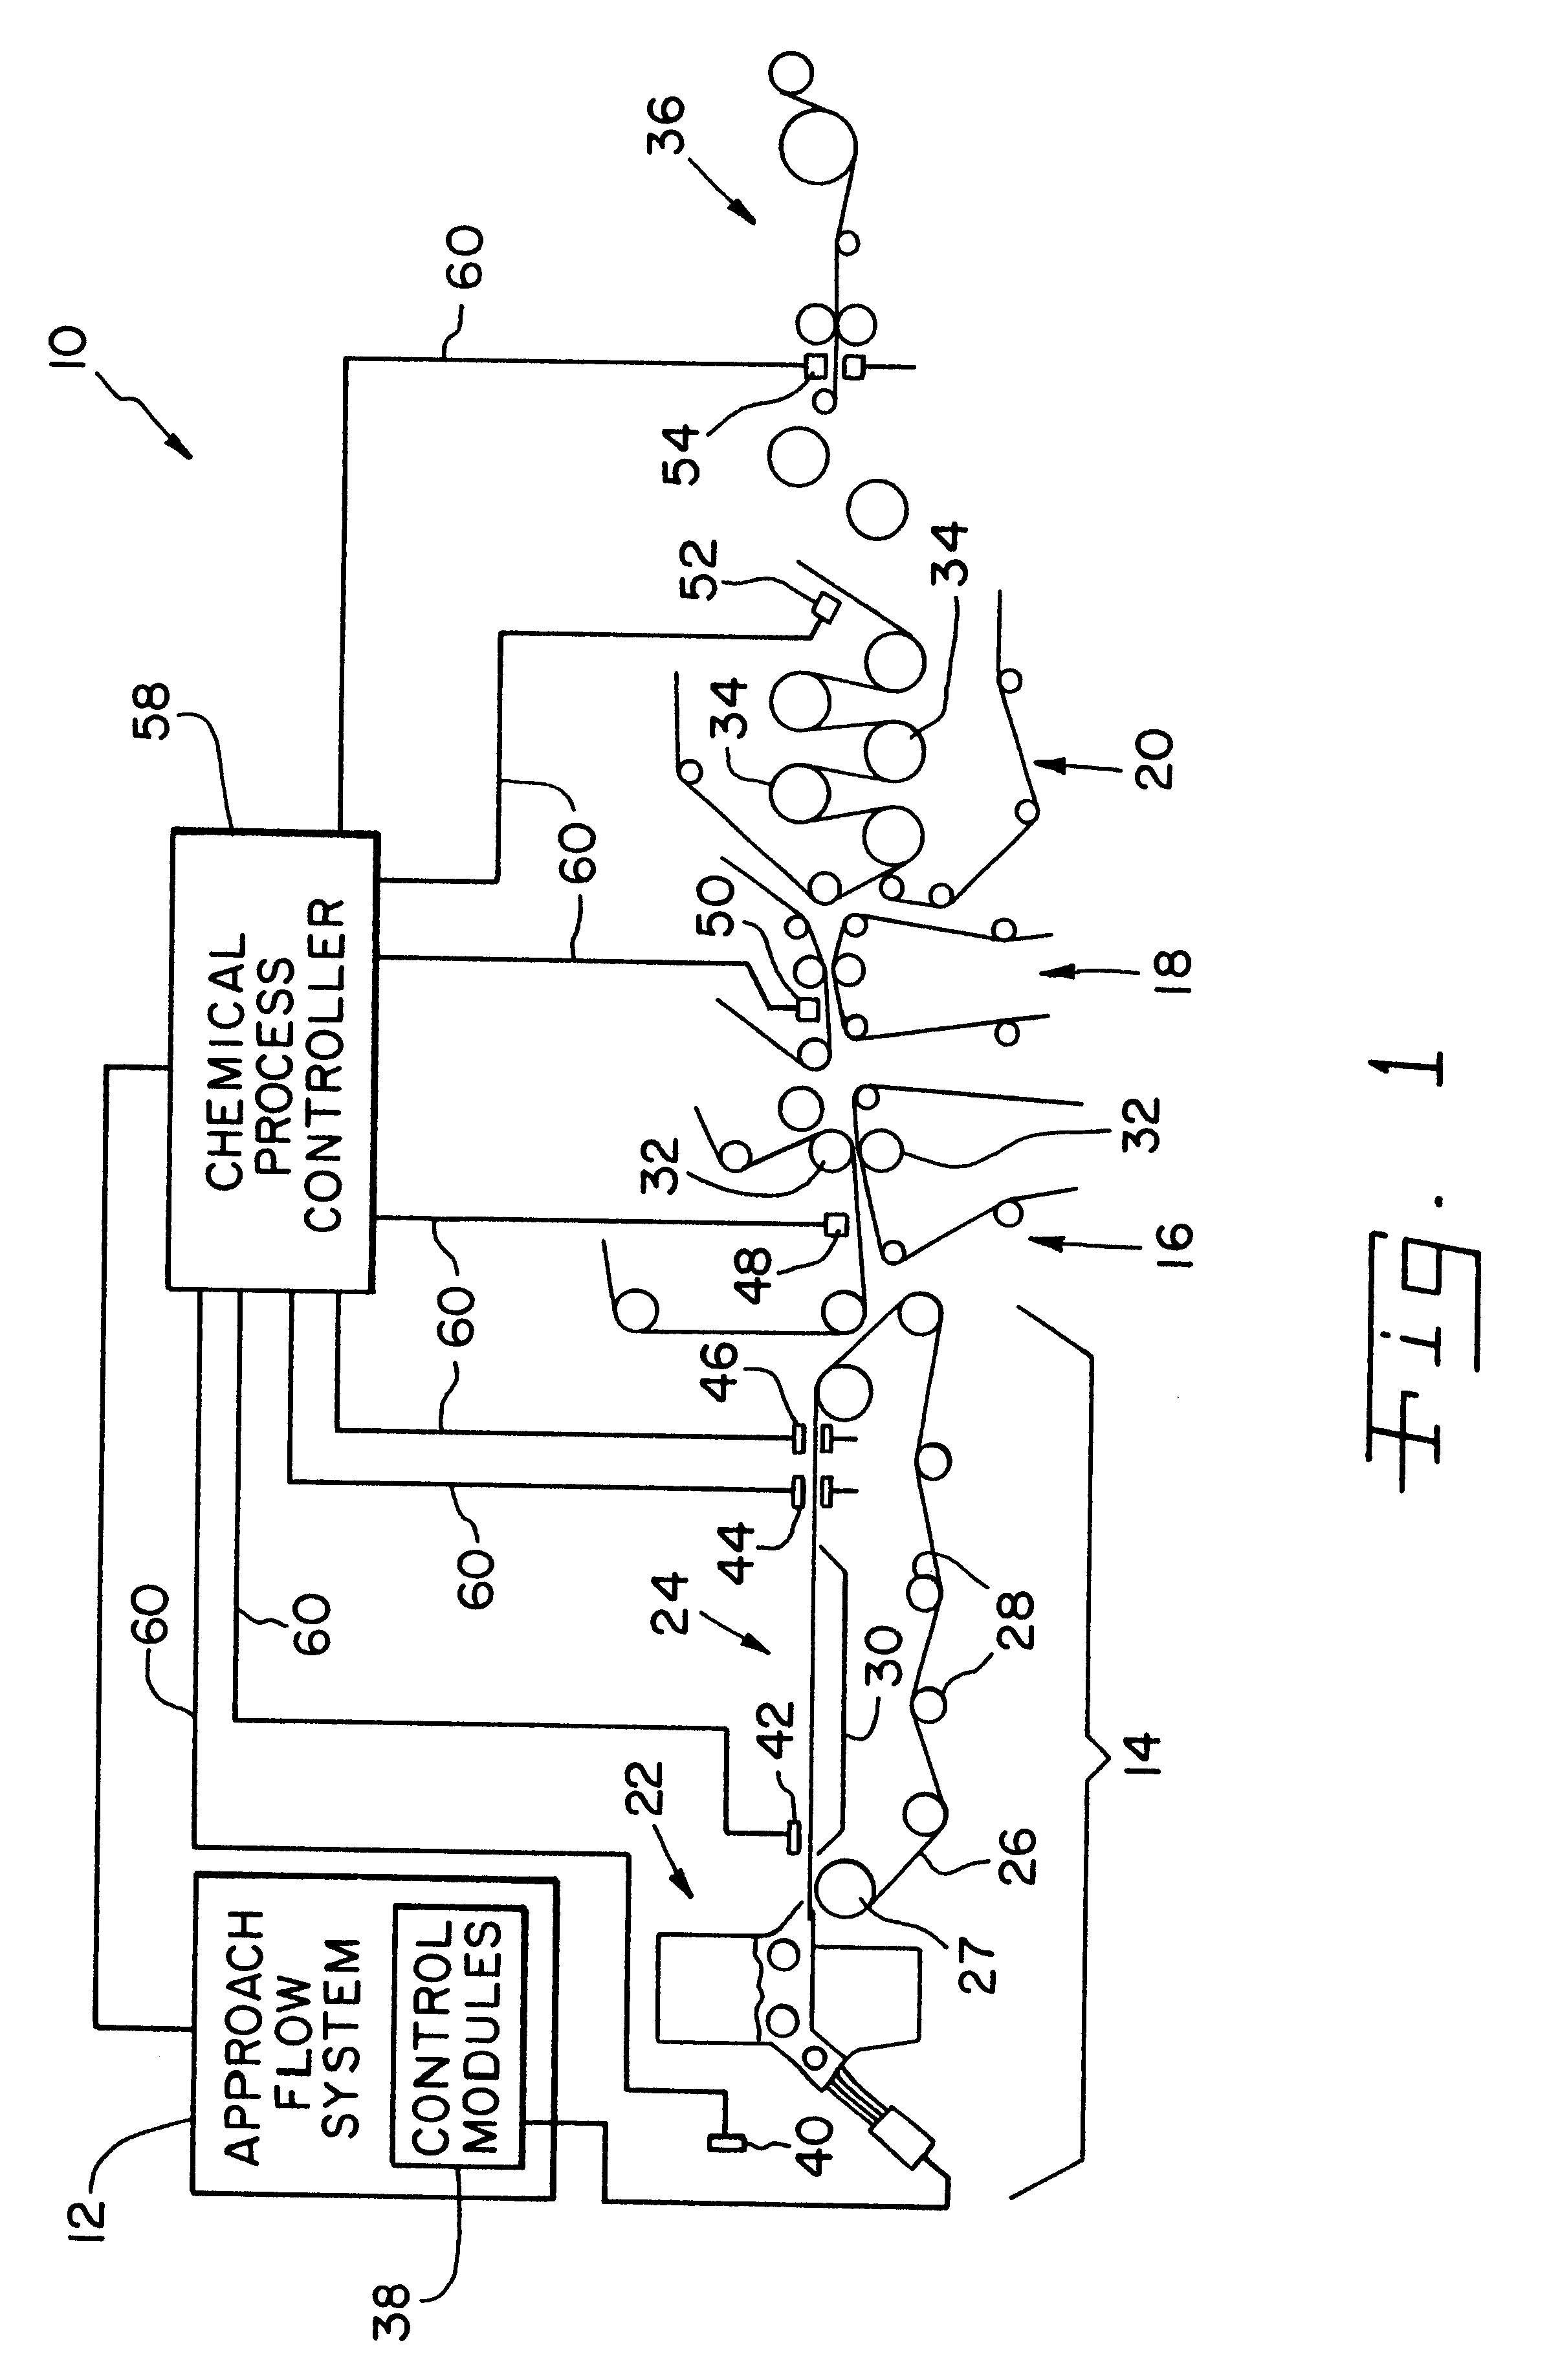 patent us6290816 - paper machine with closed loop control system